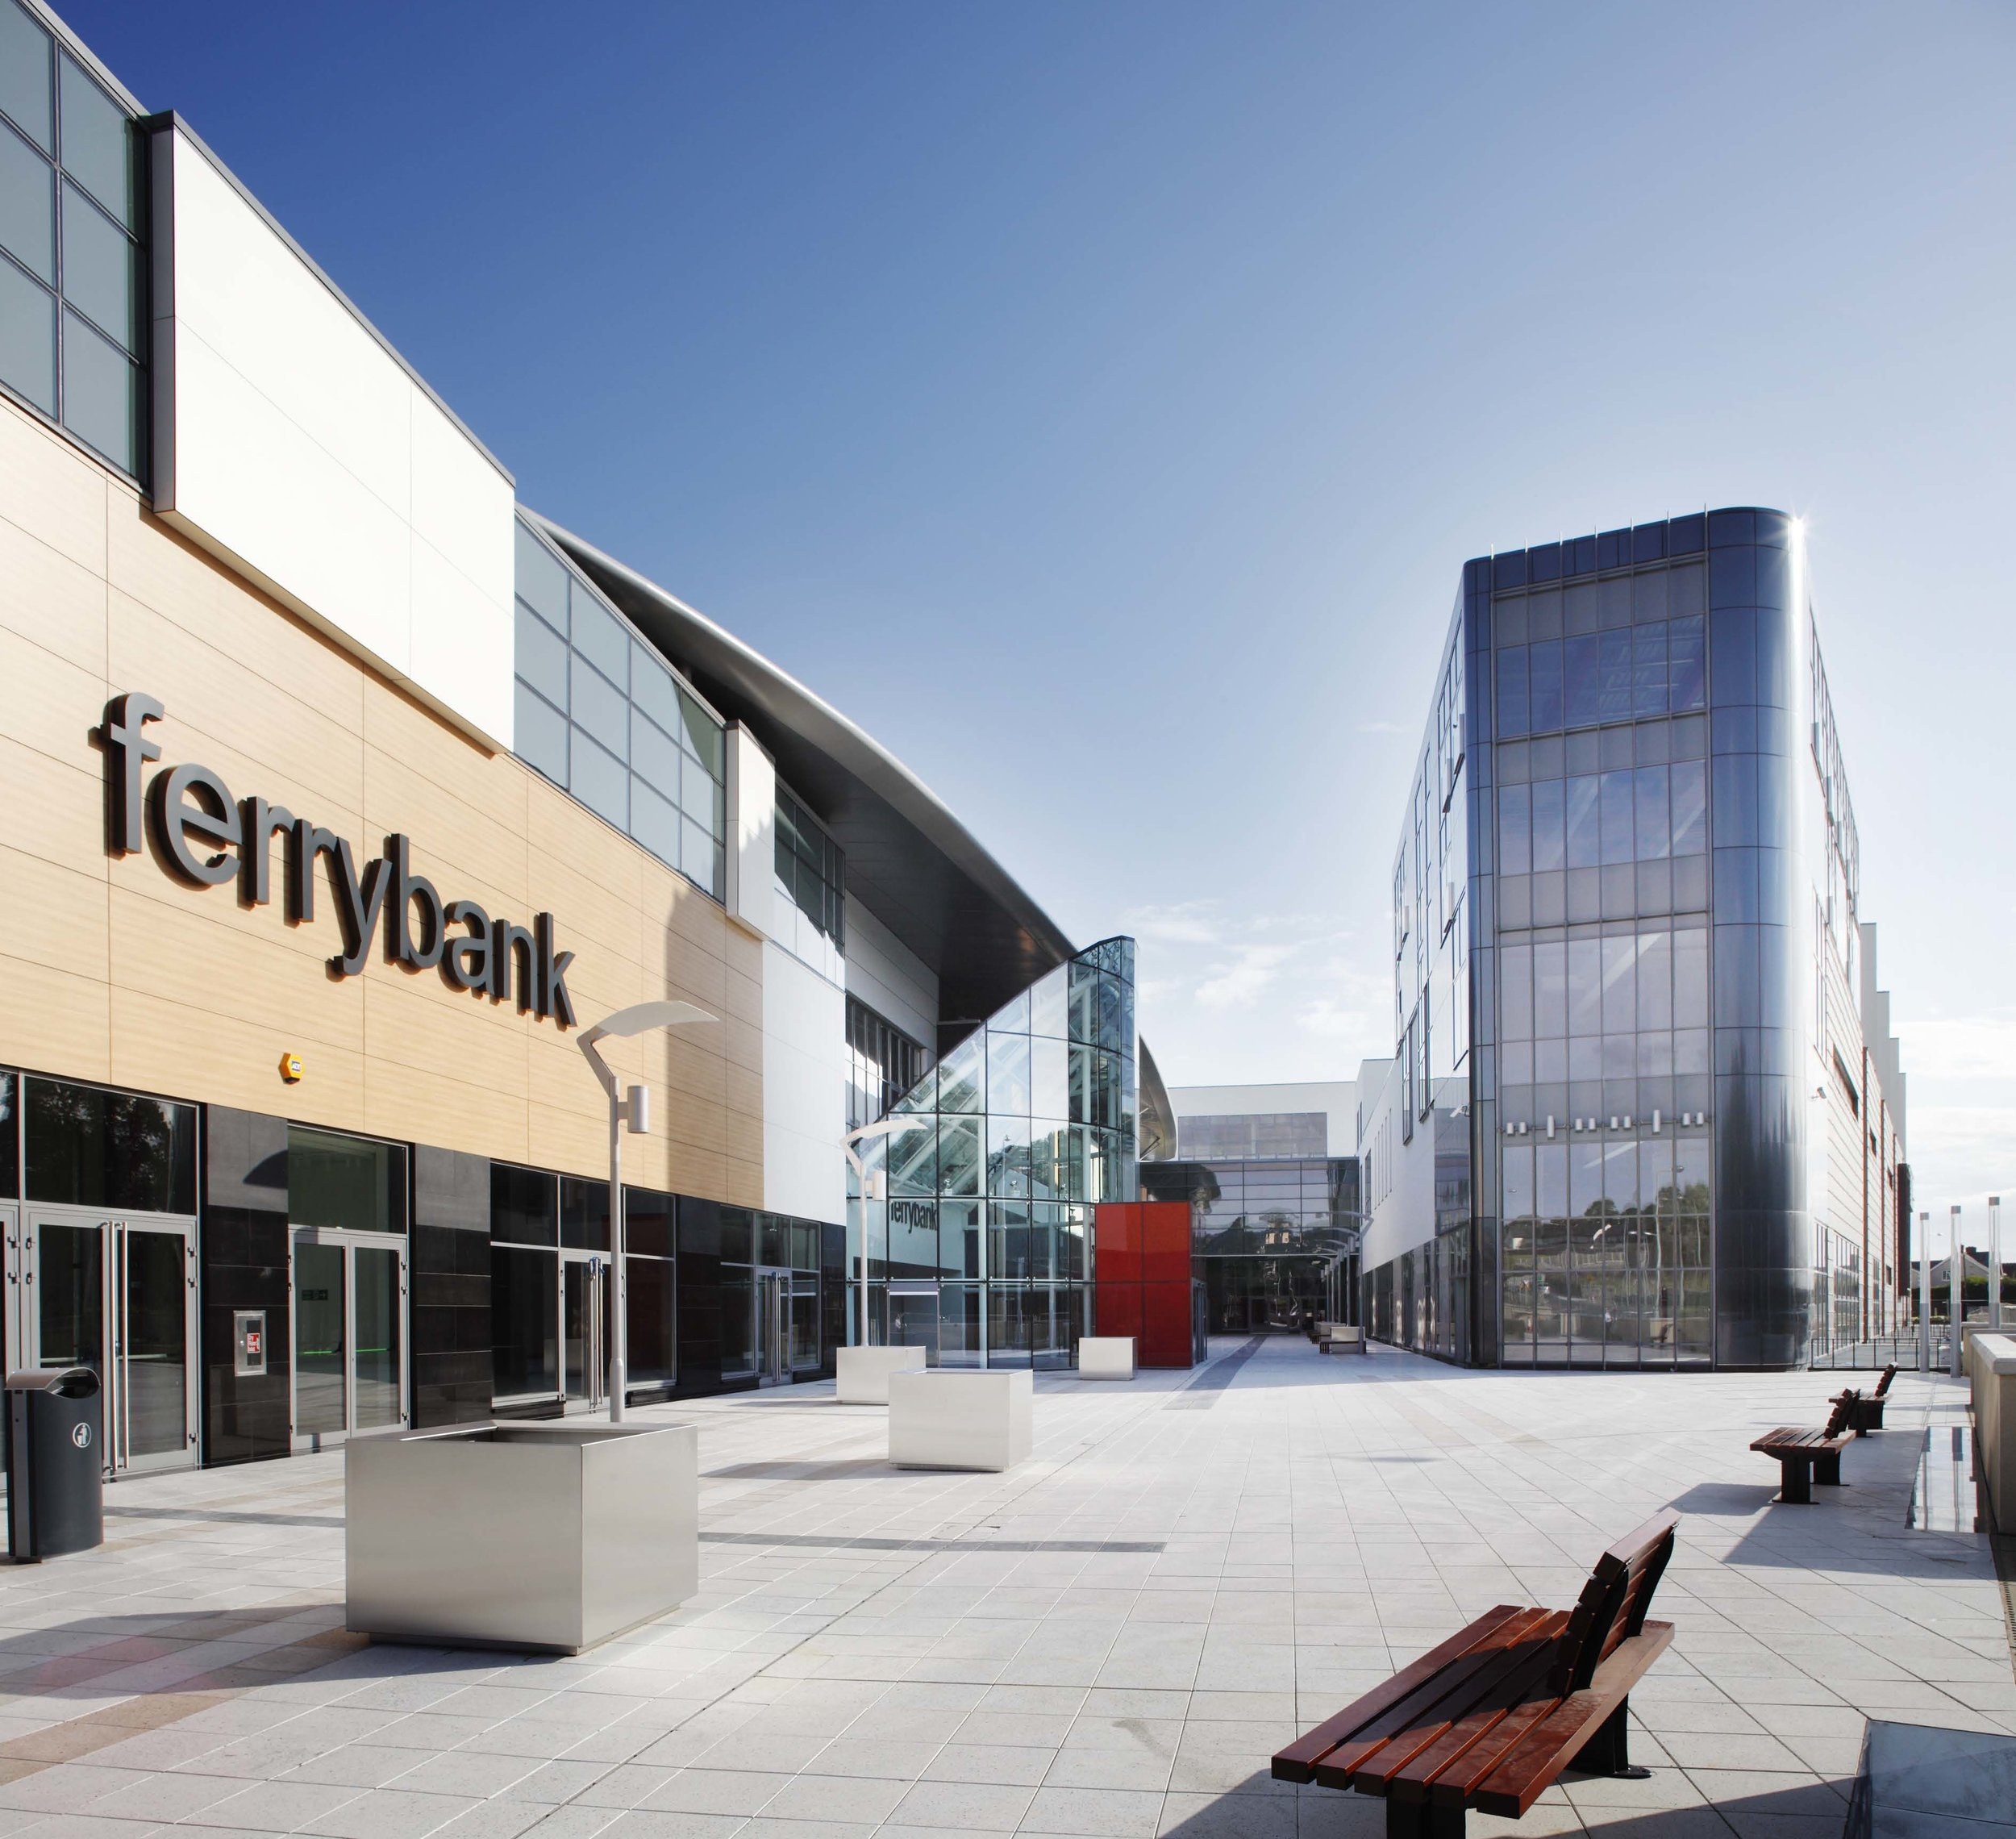 Ferrybank Shopping Centre NLCE Projects Page.jpg